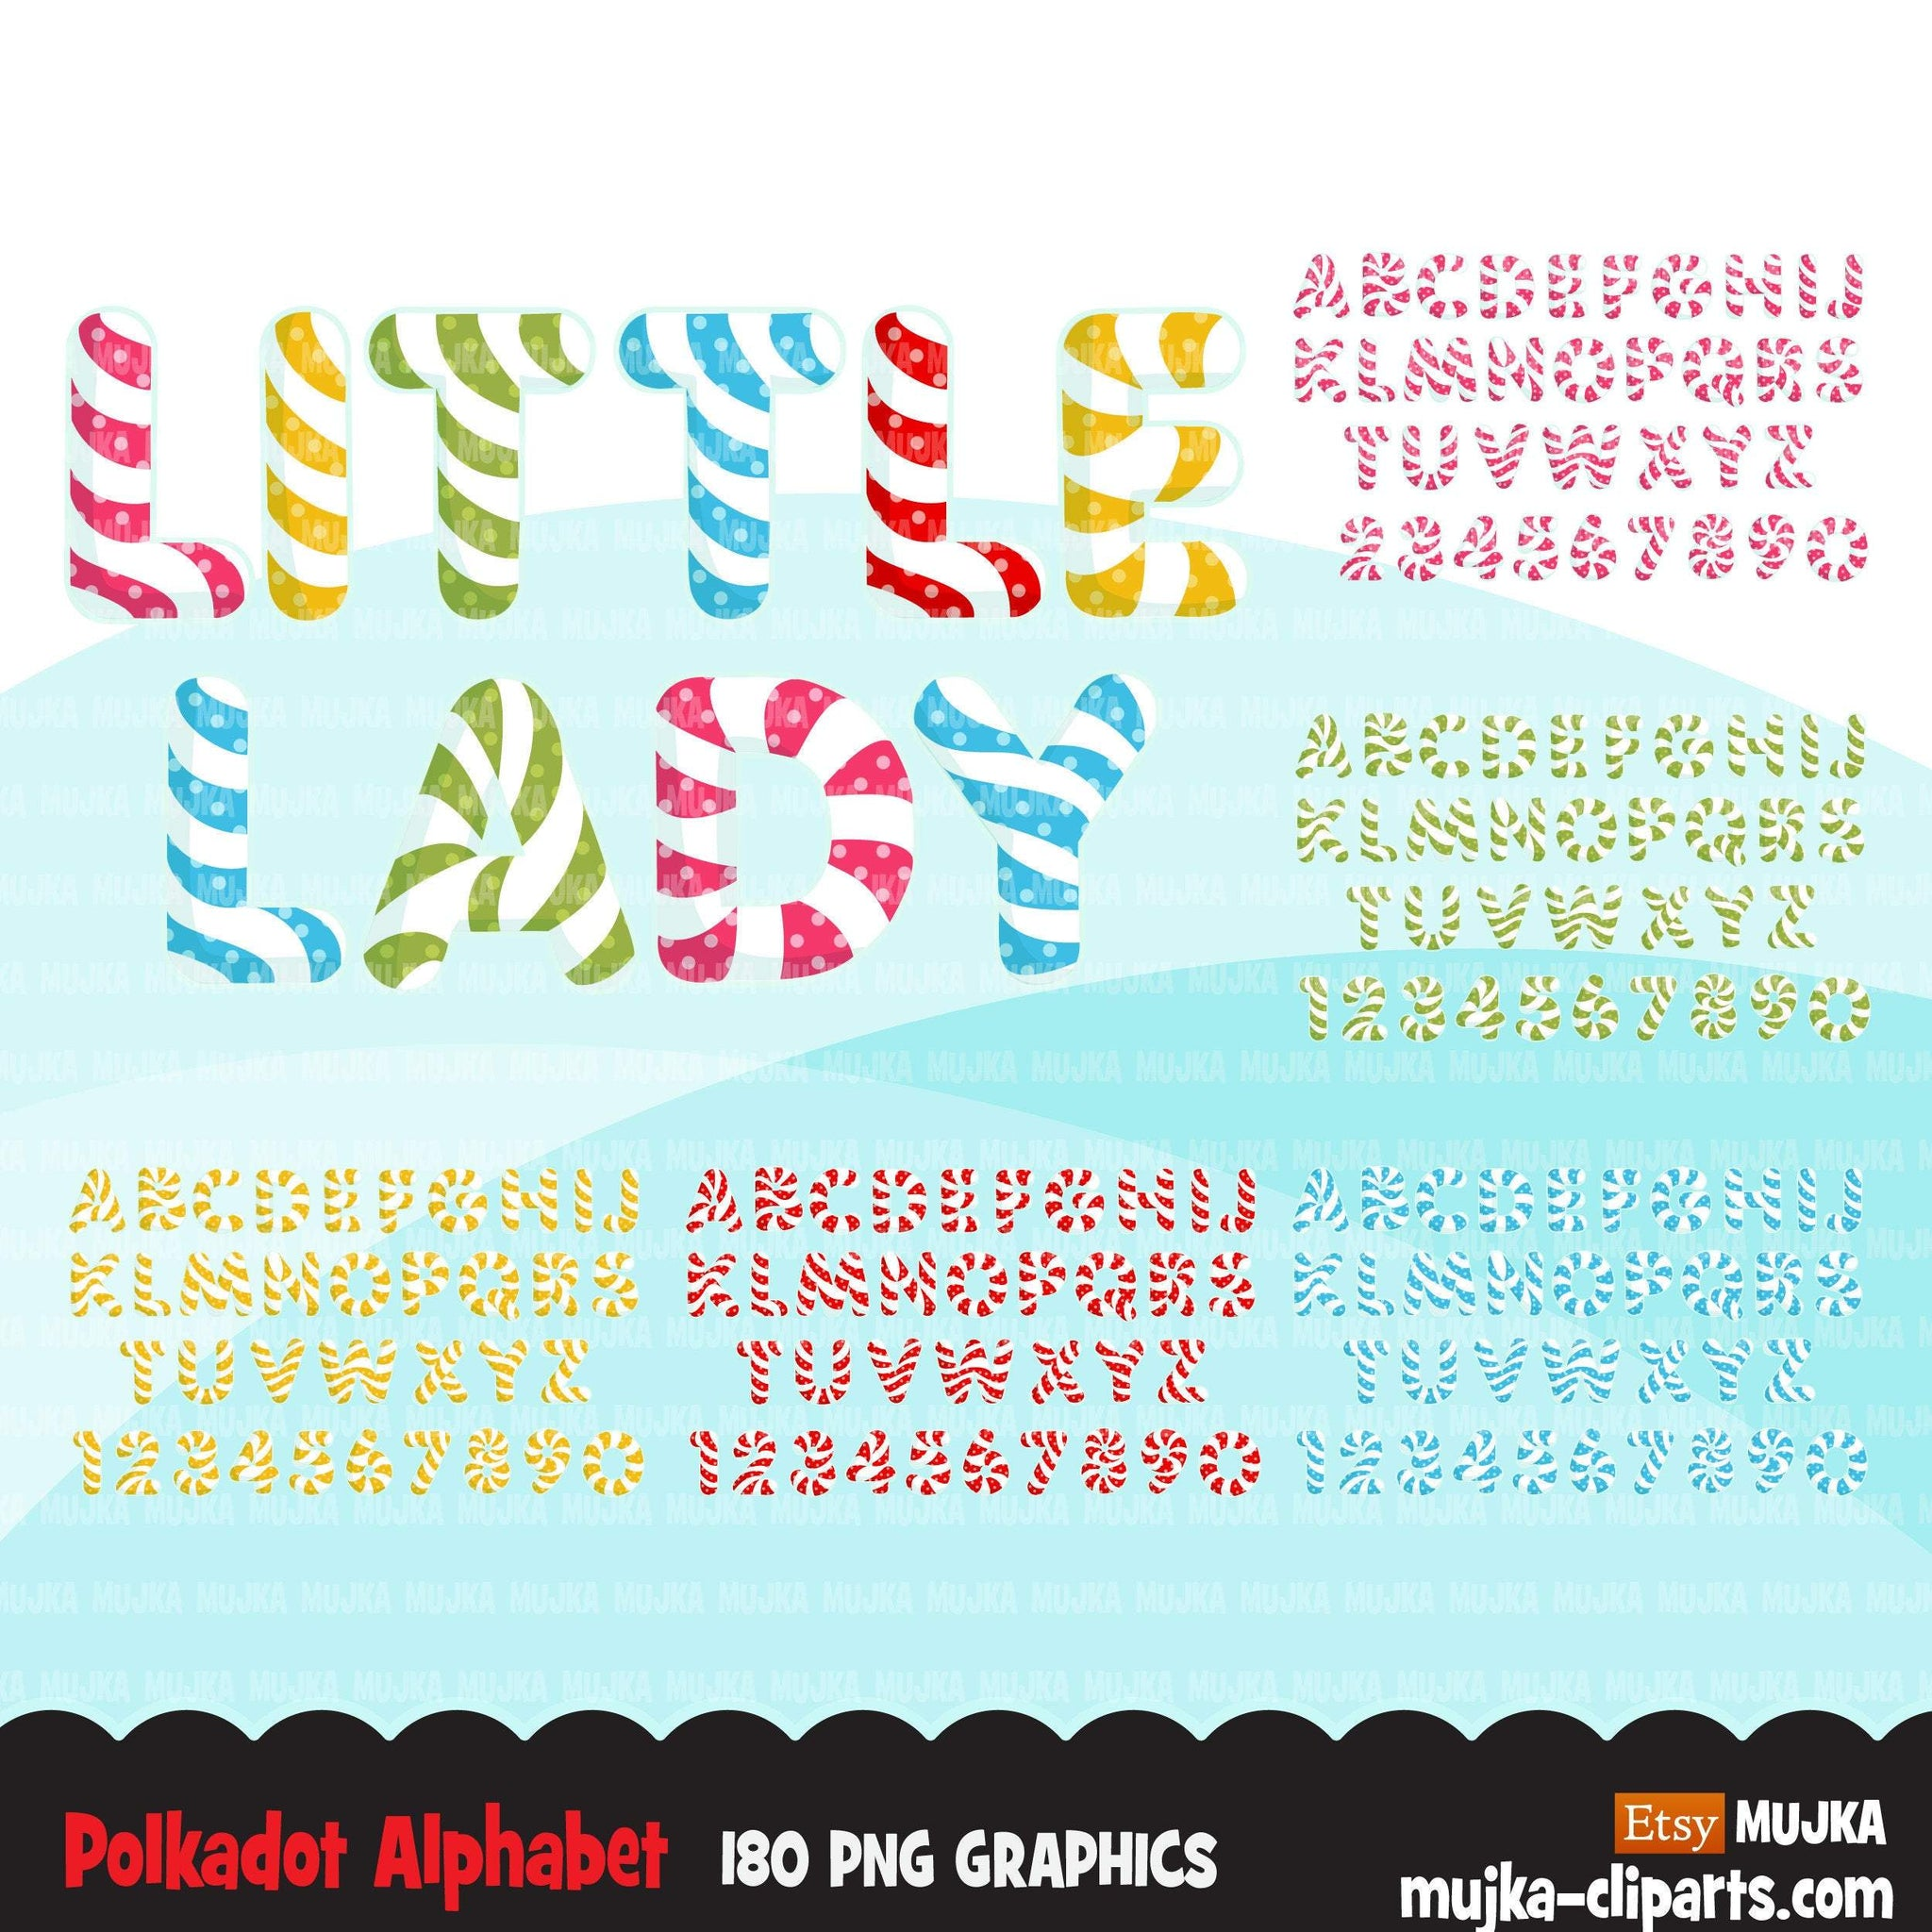 Polka dot Alphabet clipart, Lollipop shaped letters and numbers, birthday party clip art, cute letters Png graphics